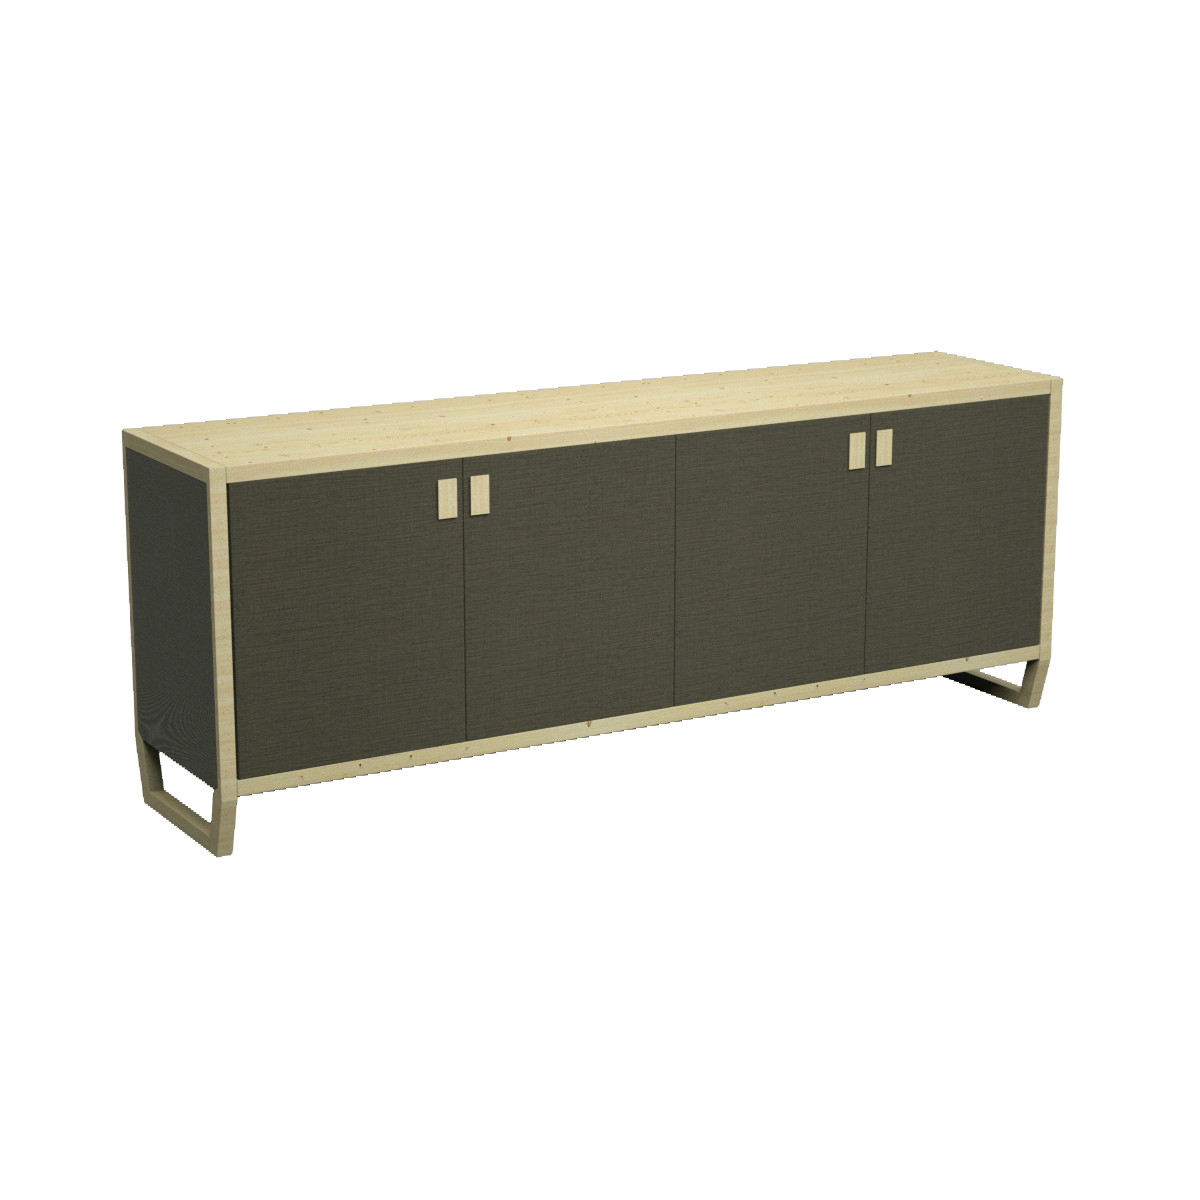 01 pan buffet 1 for Sideboard 3d